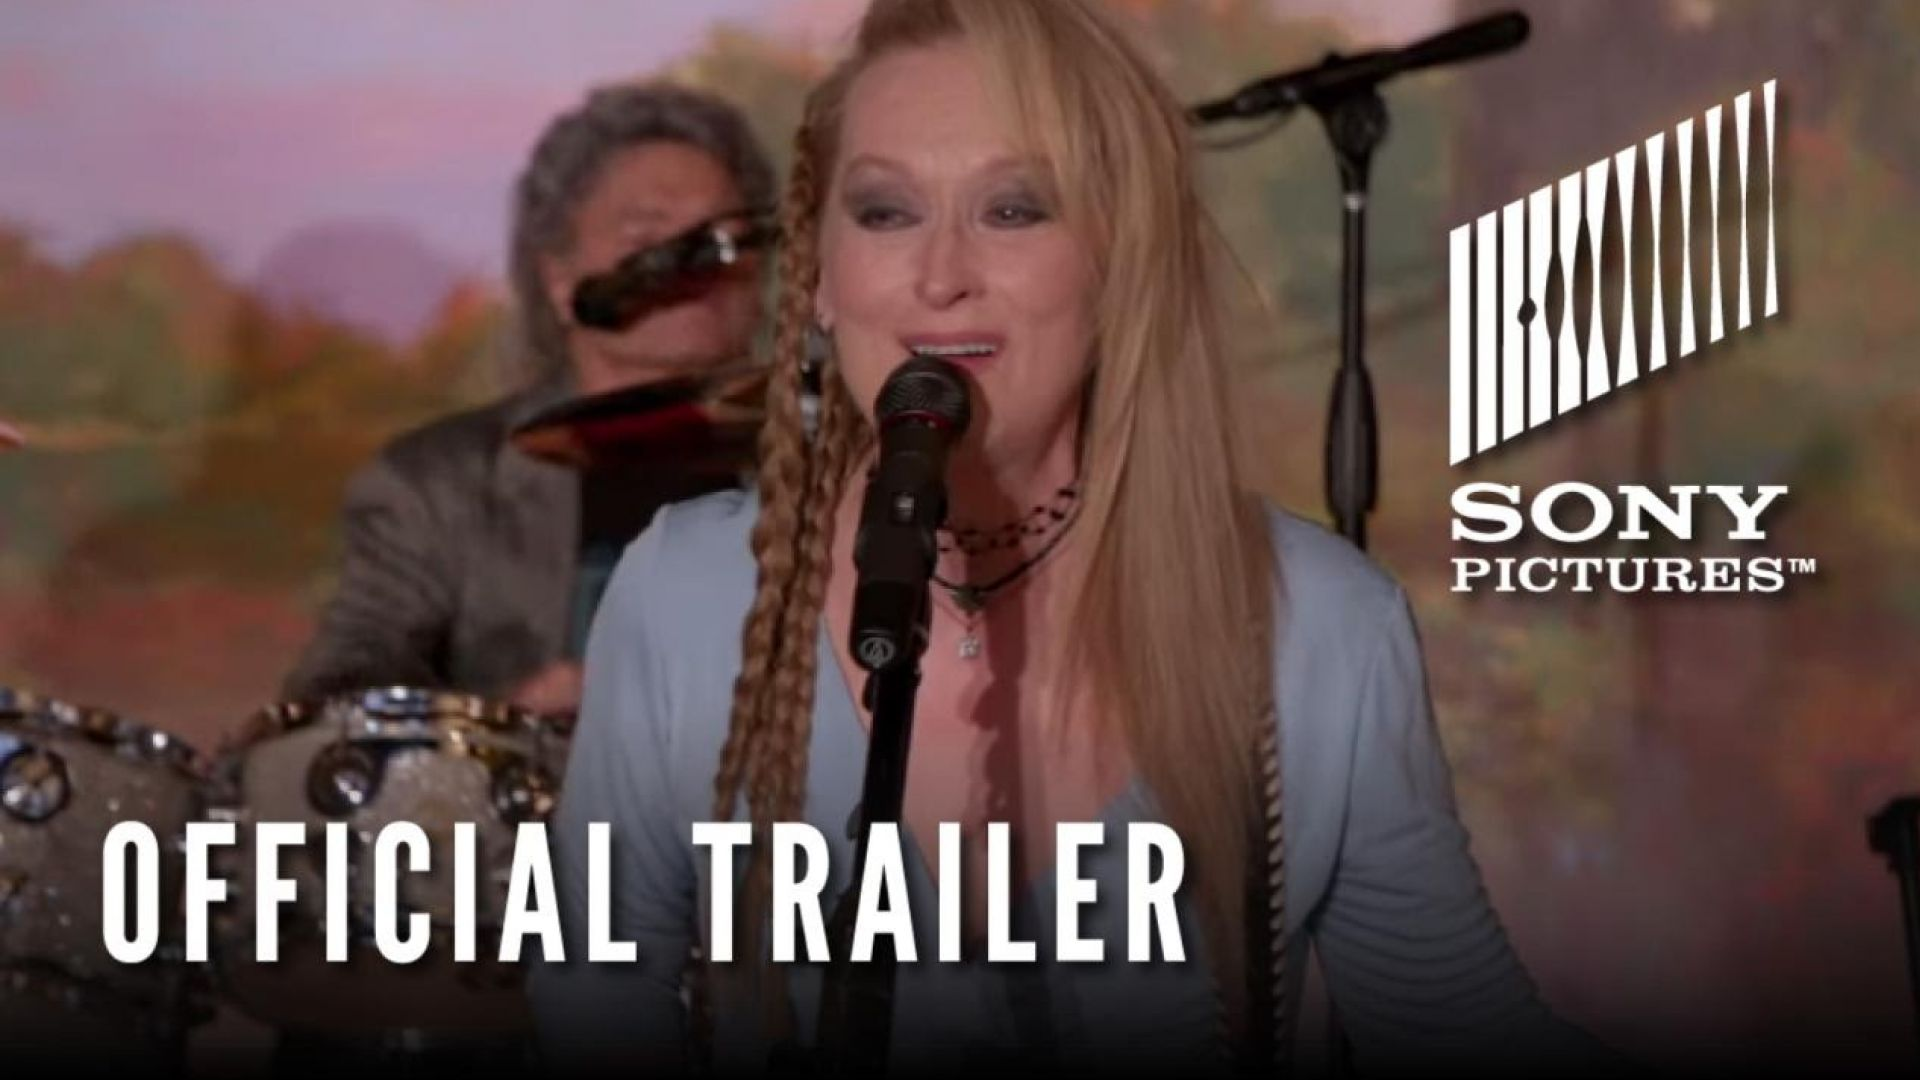 Meryl Streep rocks out in Ricki and the Flash trailer, by Jonathan Demme